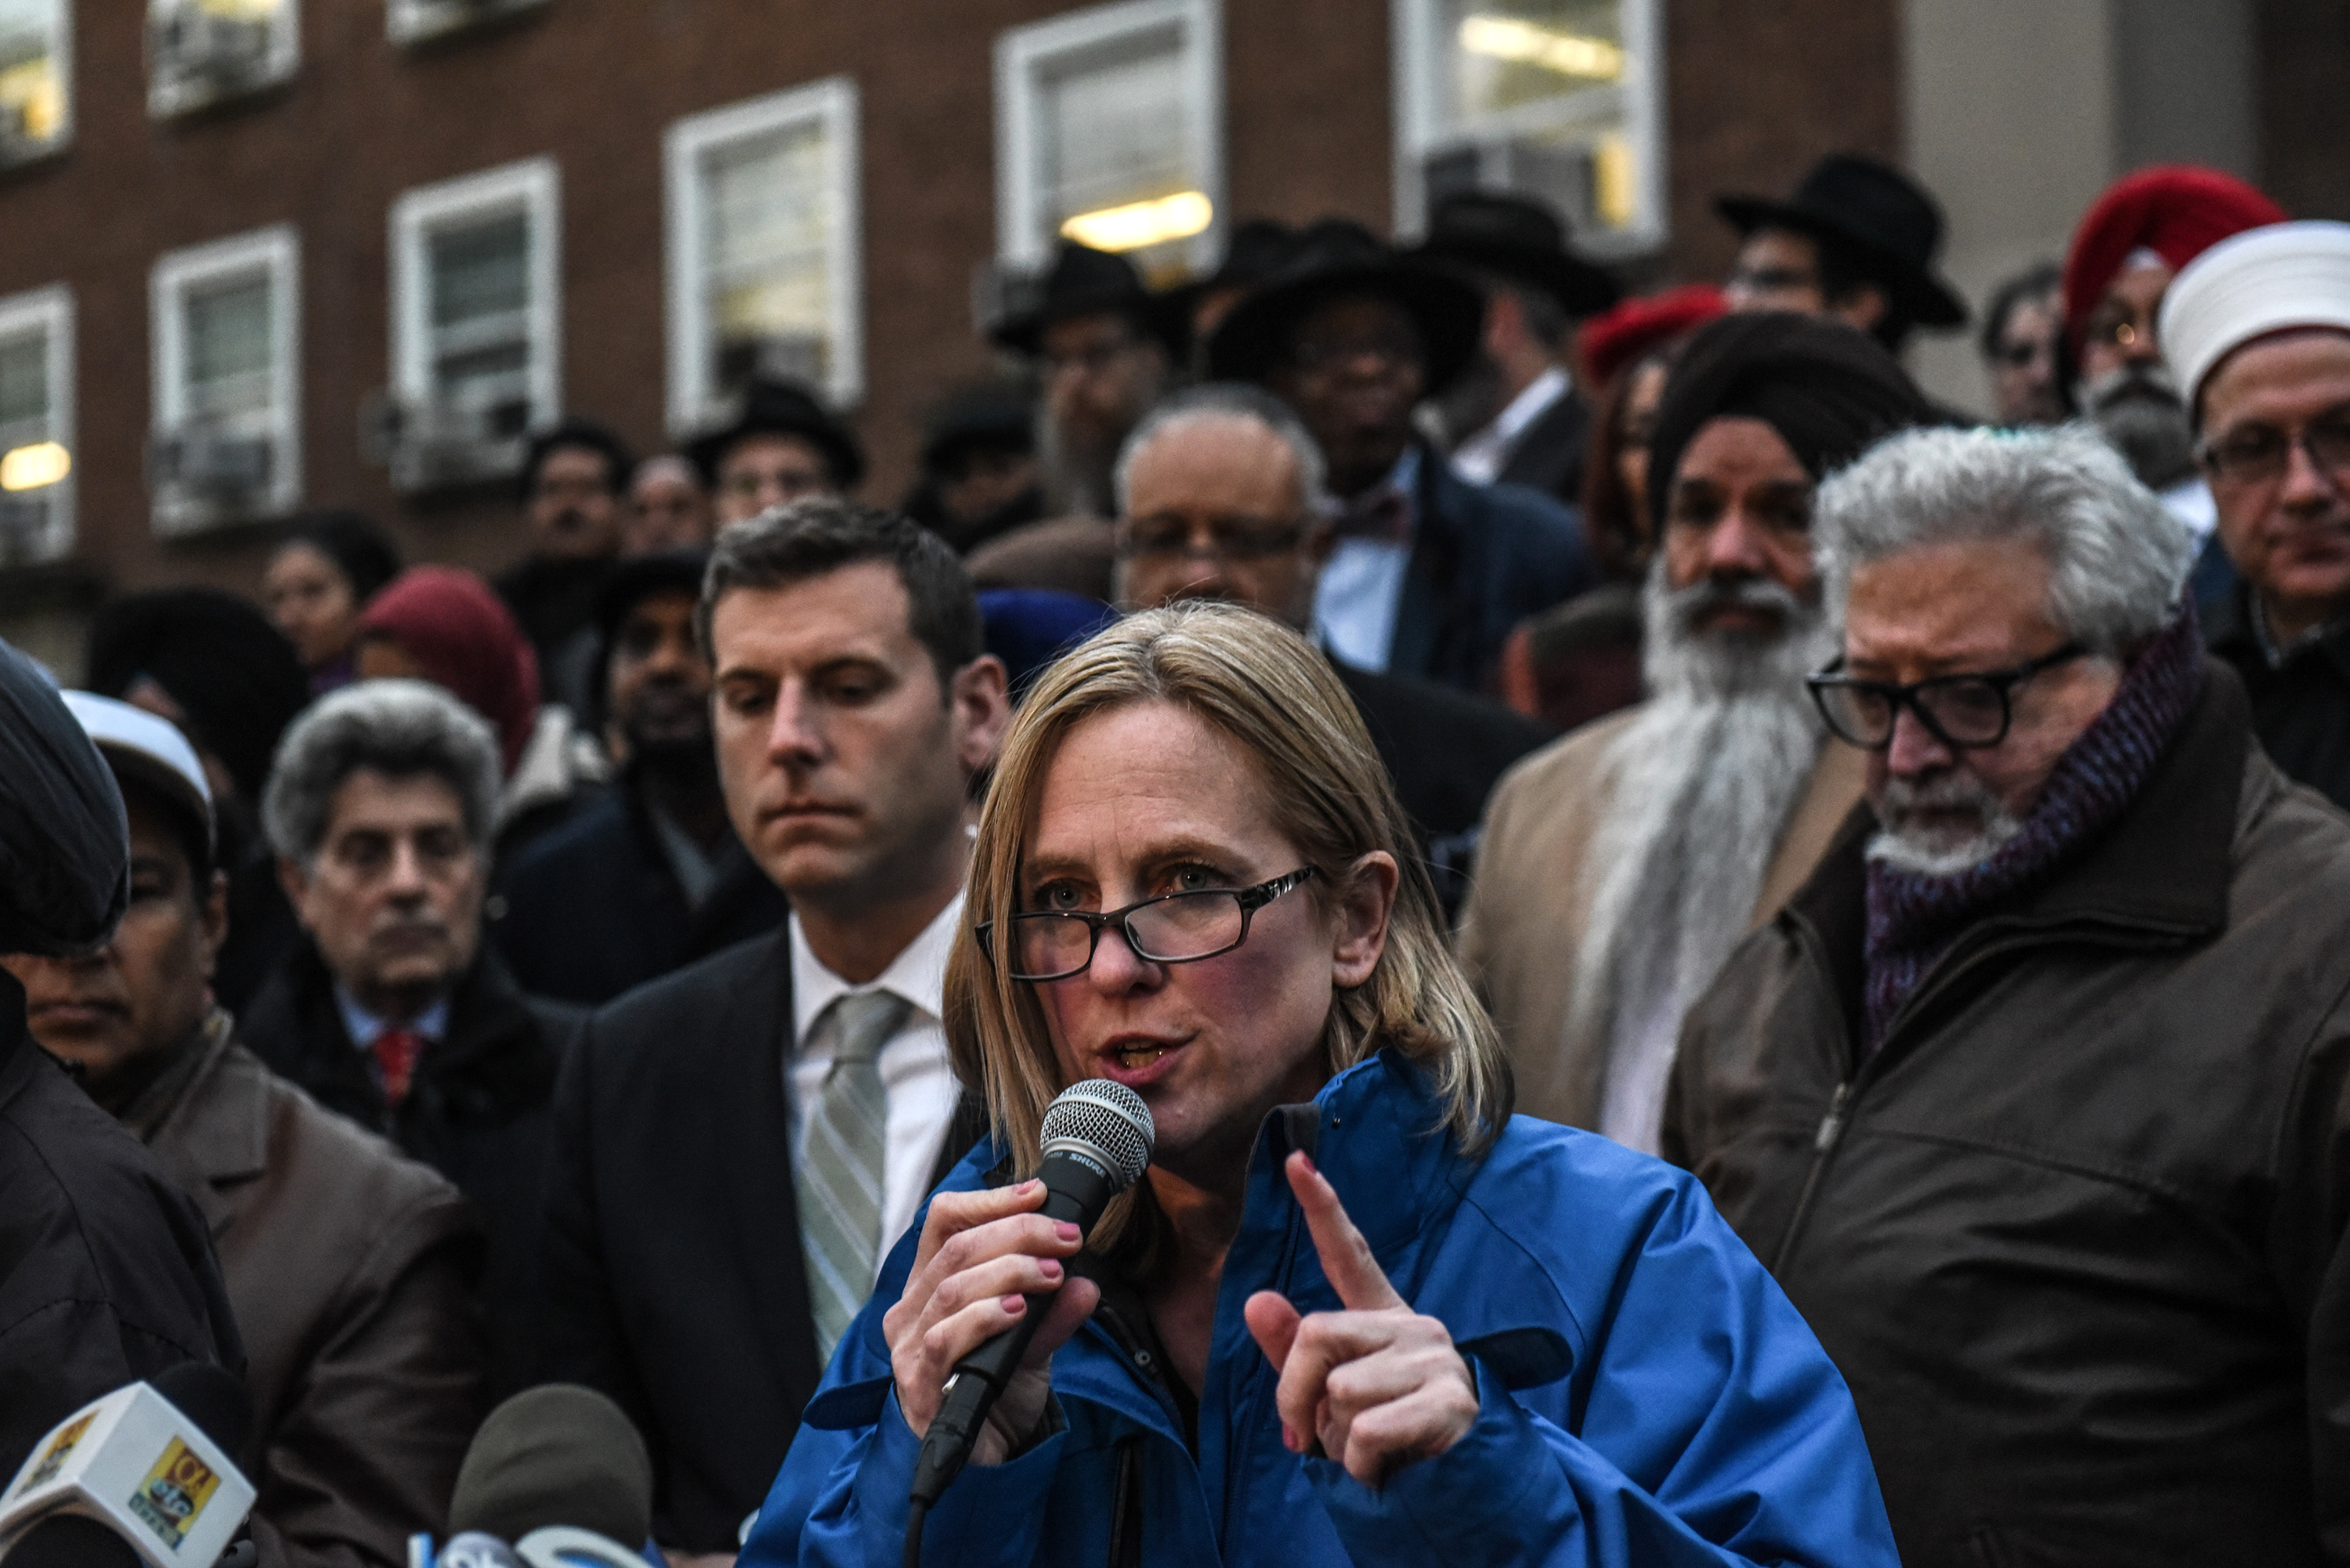 NEW YORK, NY - OCTOBER 29: Melinda Katz, the Queens Borough president, speaks during a vigil in memory of the victims of the mass shooting at the Tree Of Life Synagogue on the steps of Queens Borough Hall on October 29, 2018 in New York City. Eleven people were killed and six more were wounded in the mass shooting that police say was fueled by antisemitism. (Photo by Stephanie Keith/Getty Images)